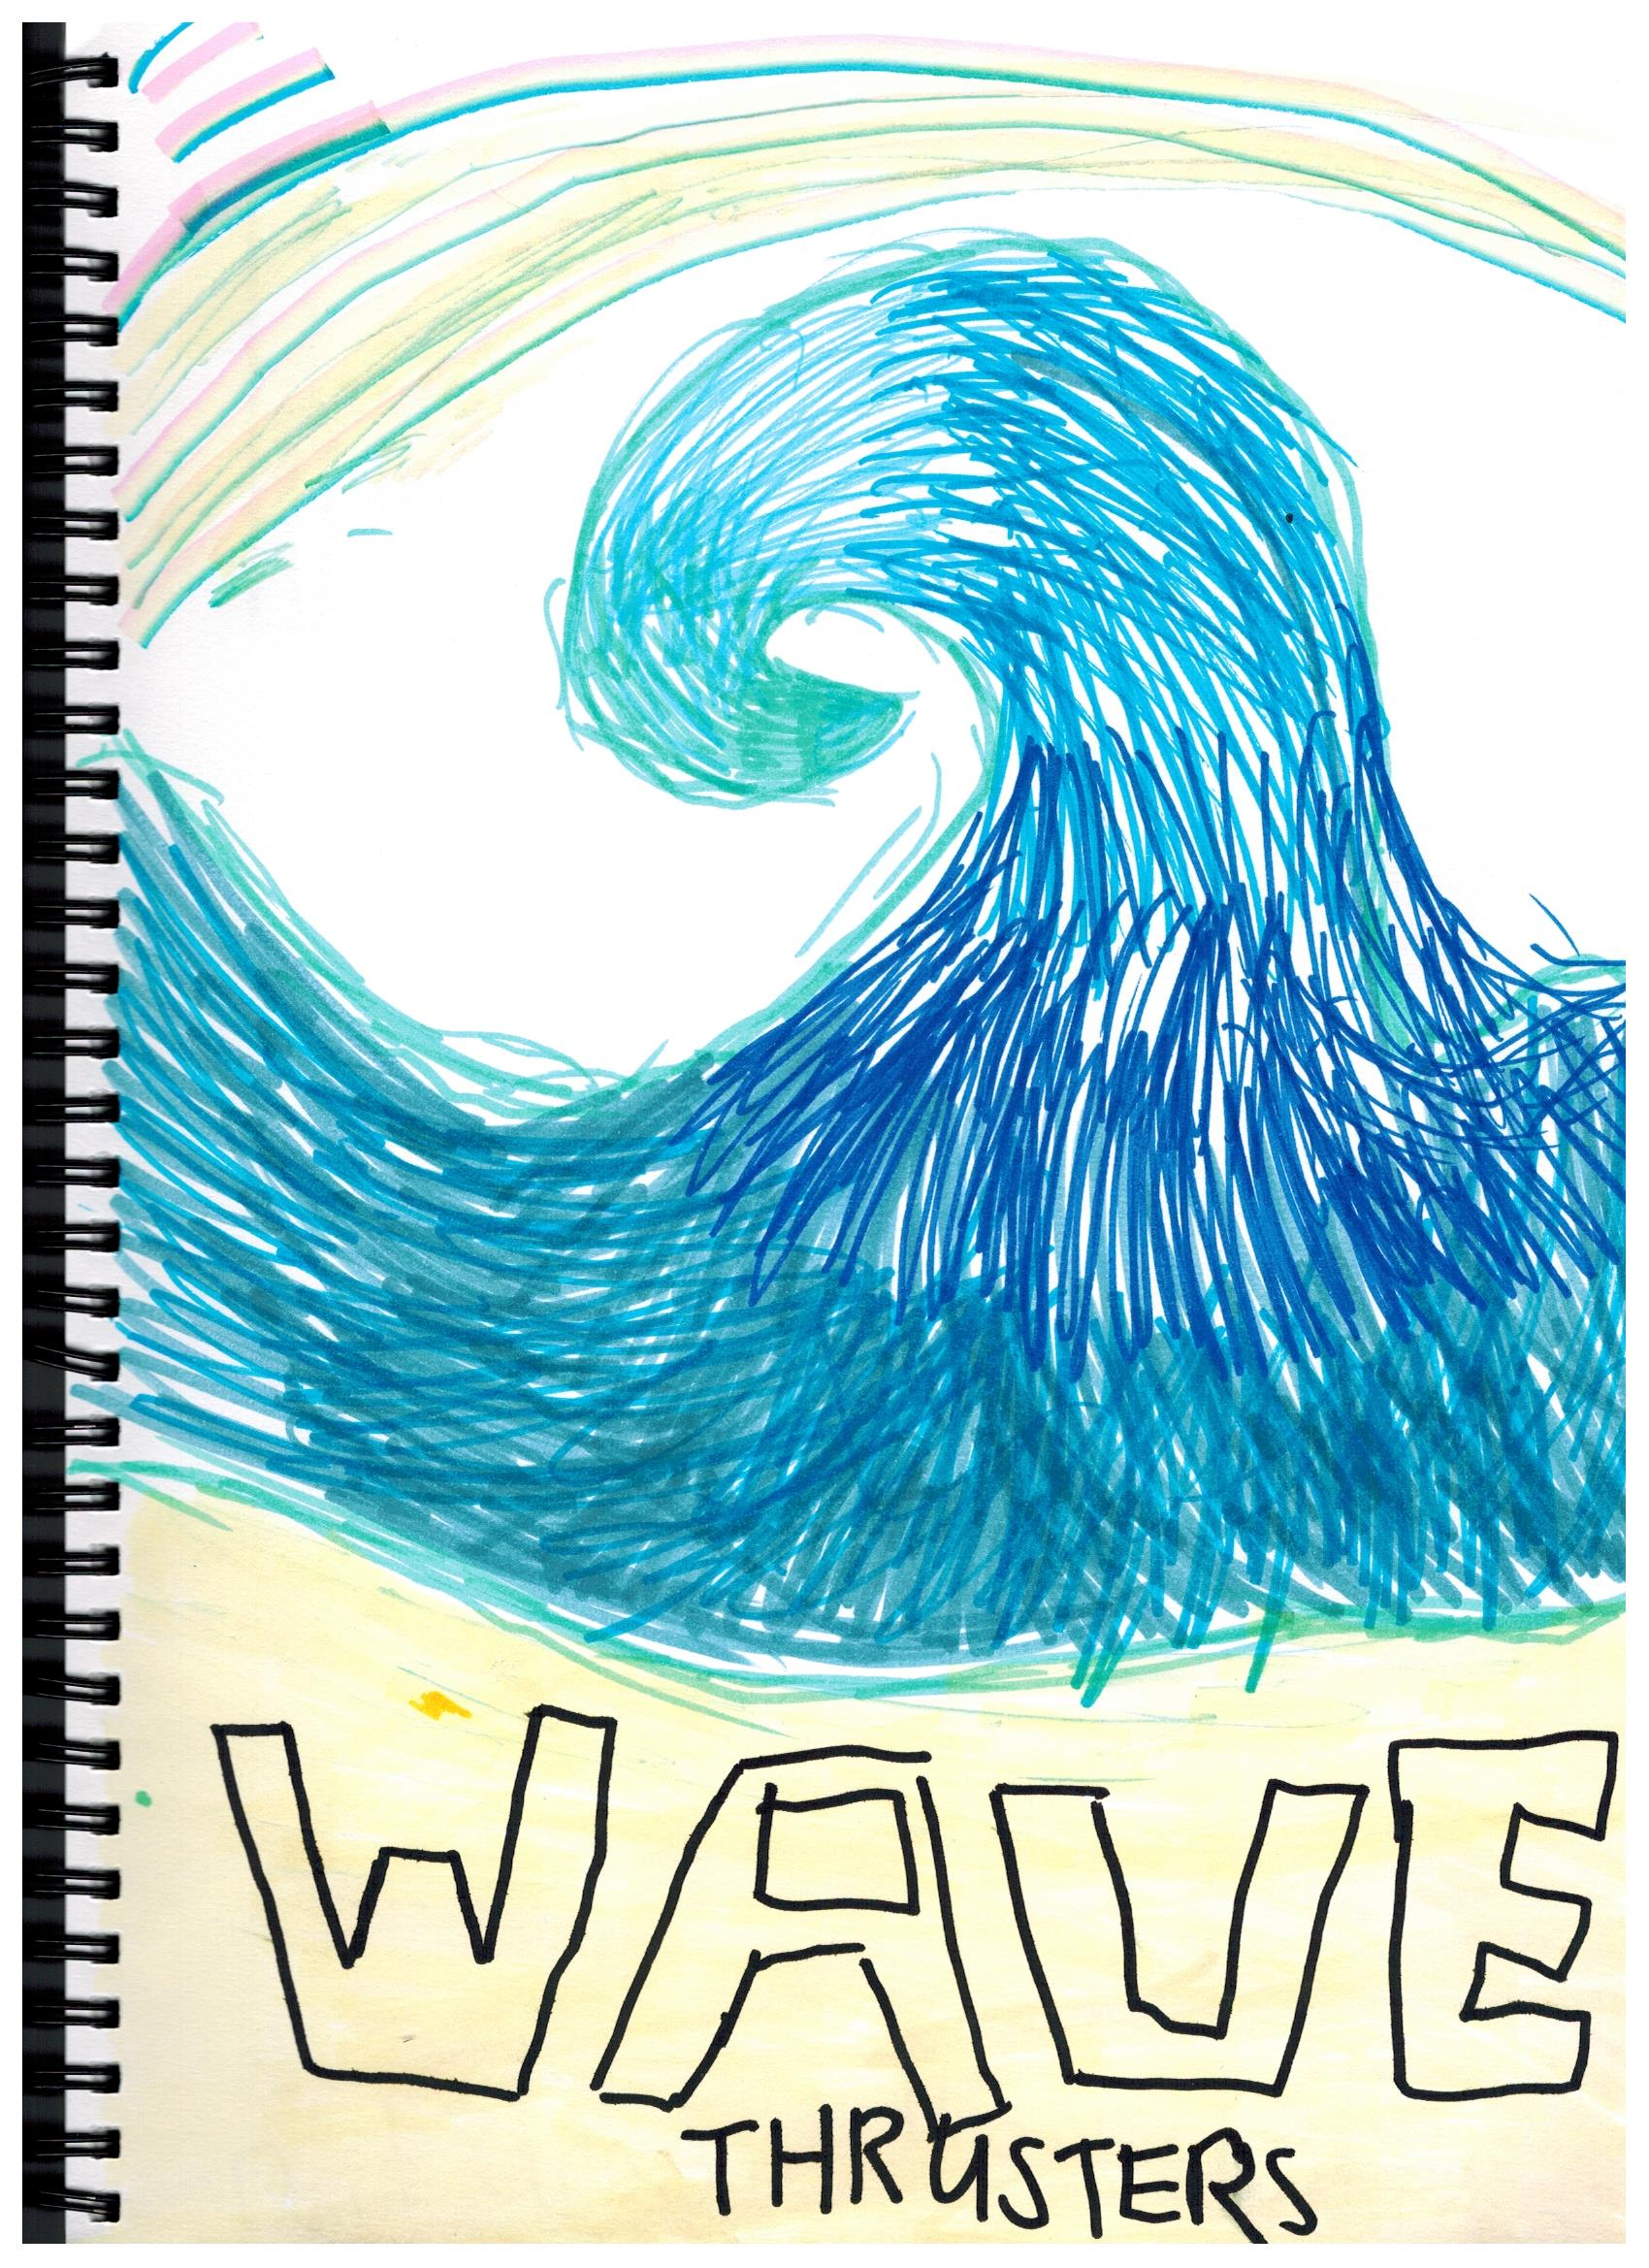 Wave Thrusters